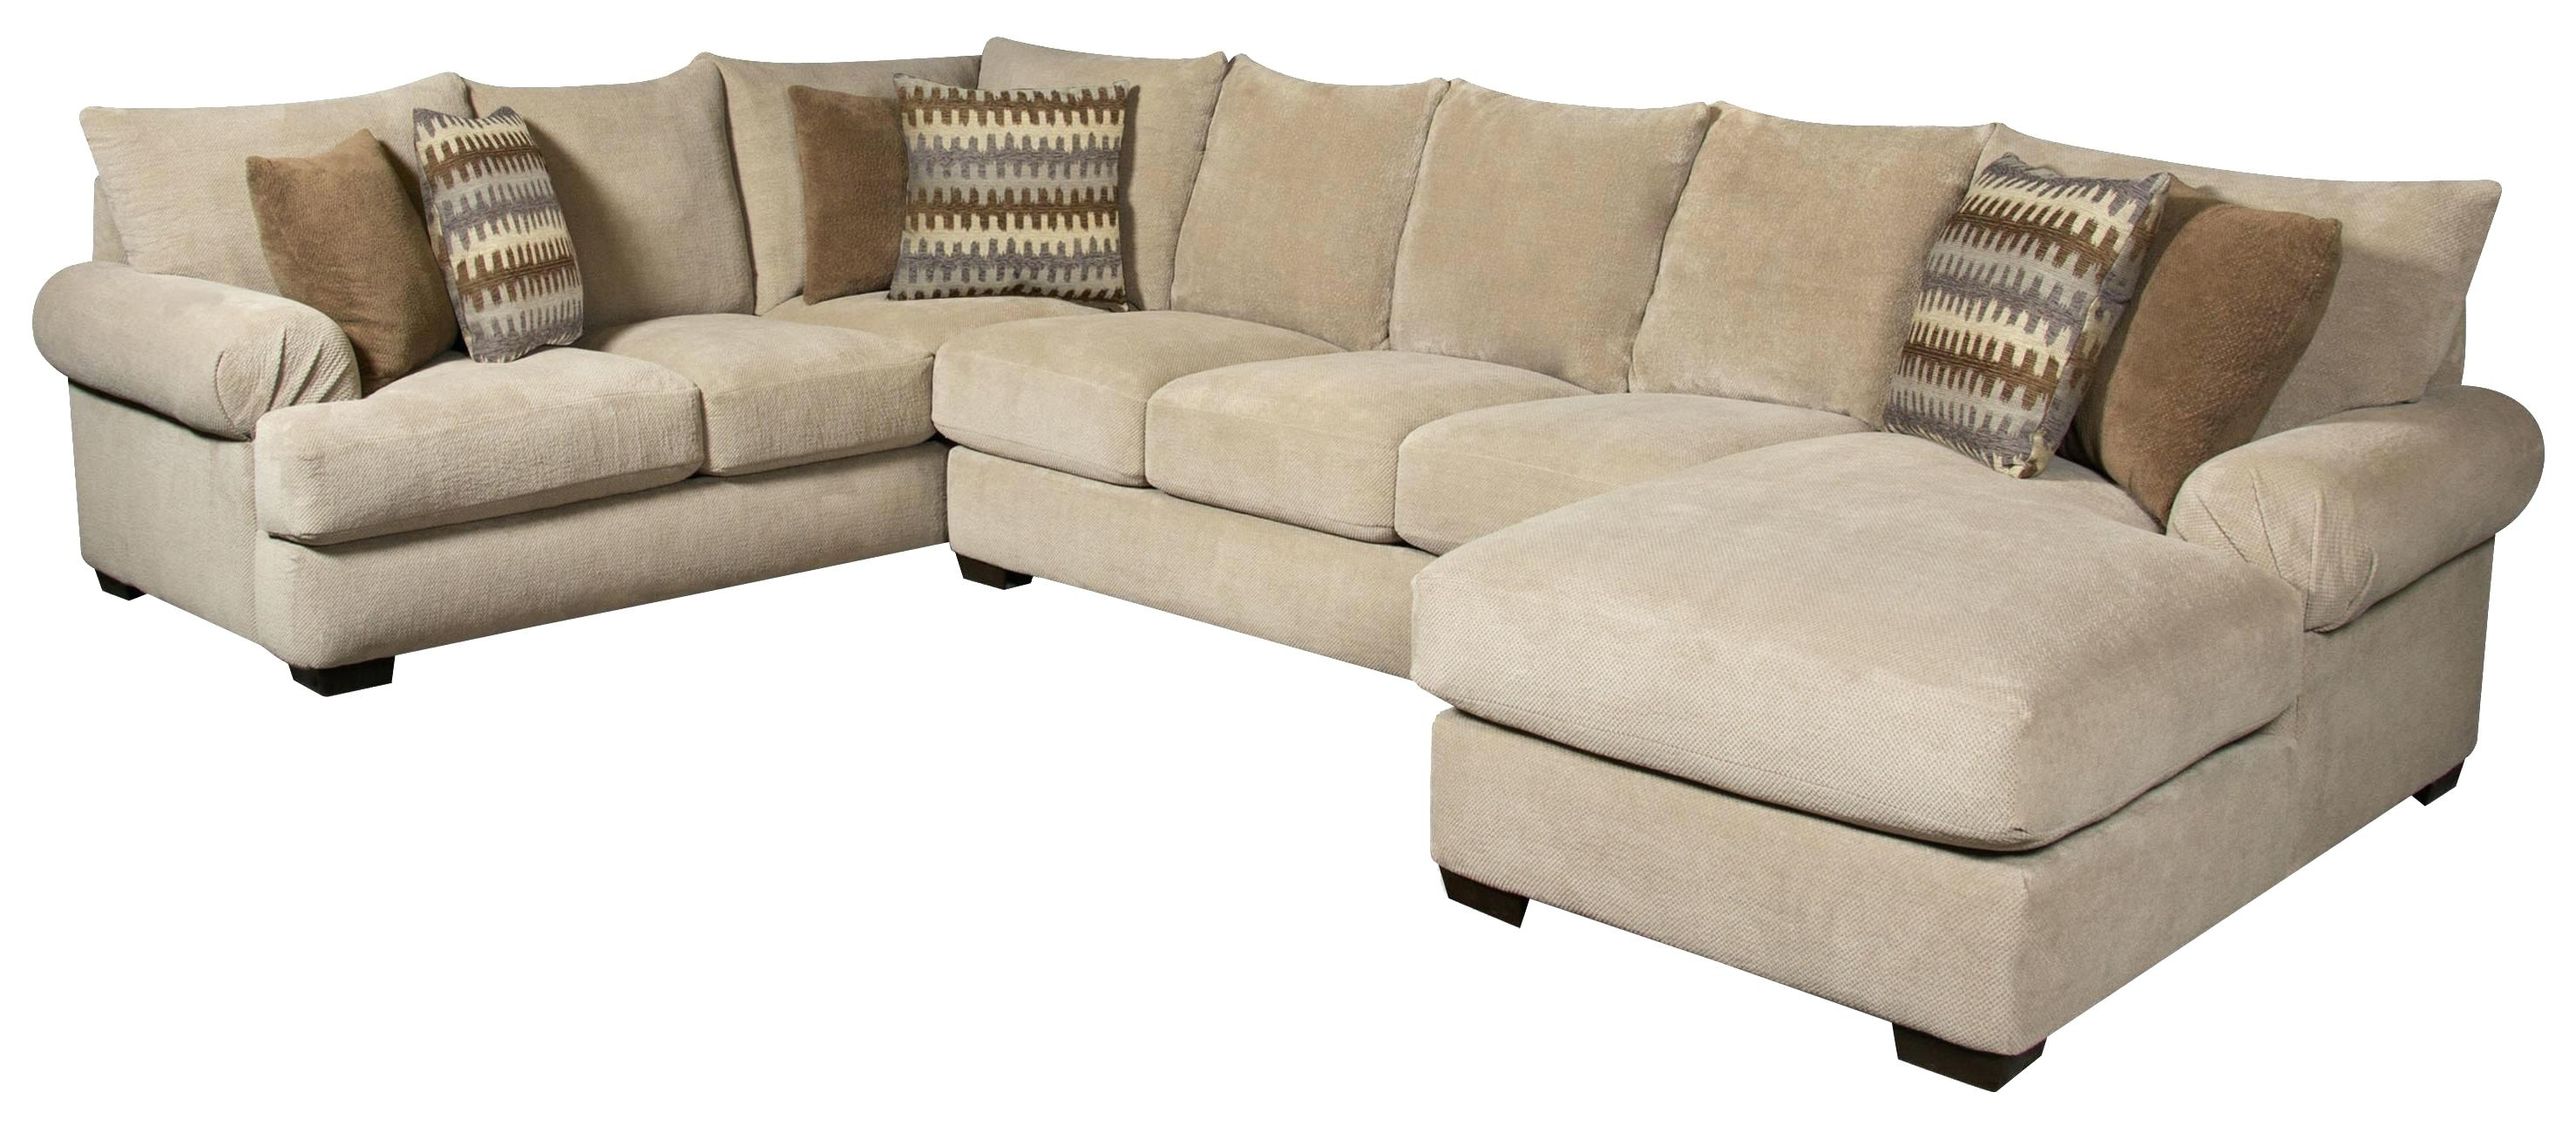 chesterfield sofa made in north carolina home the honoroak. Black Bedroom Furniture Sets. Home Design Ideas